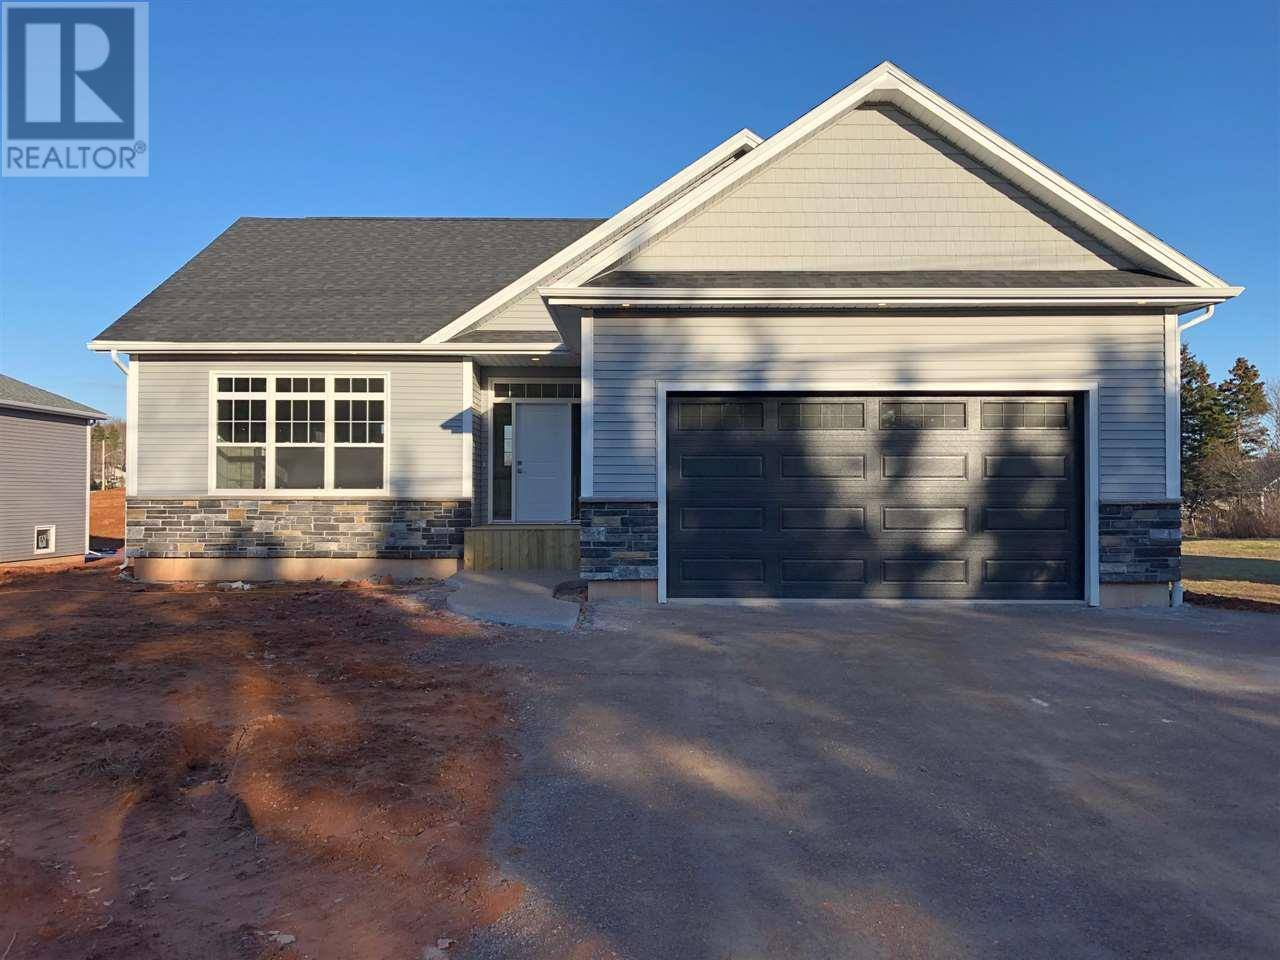 House for sale at 320 Upton Rd West Royalty Prince Edward Island - MLS: 201923302